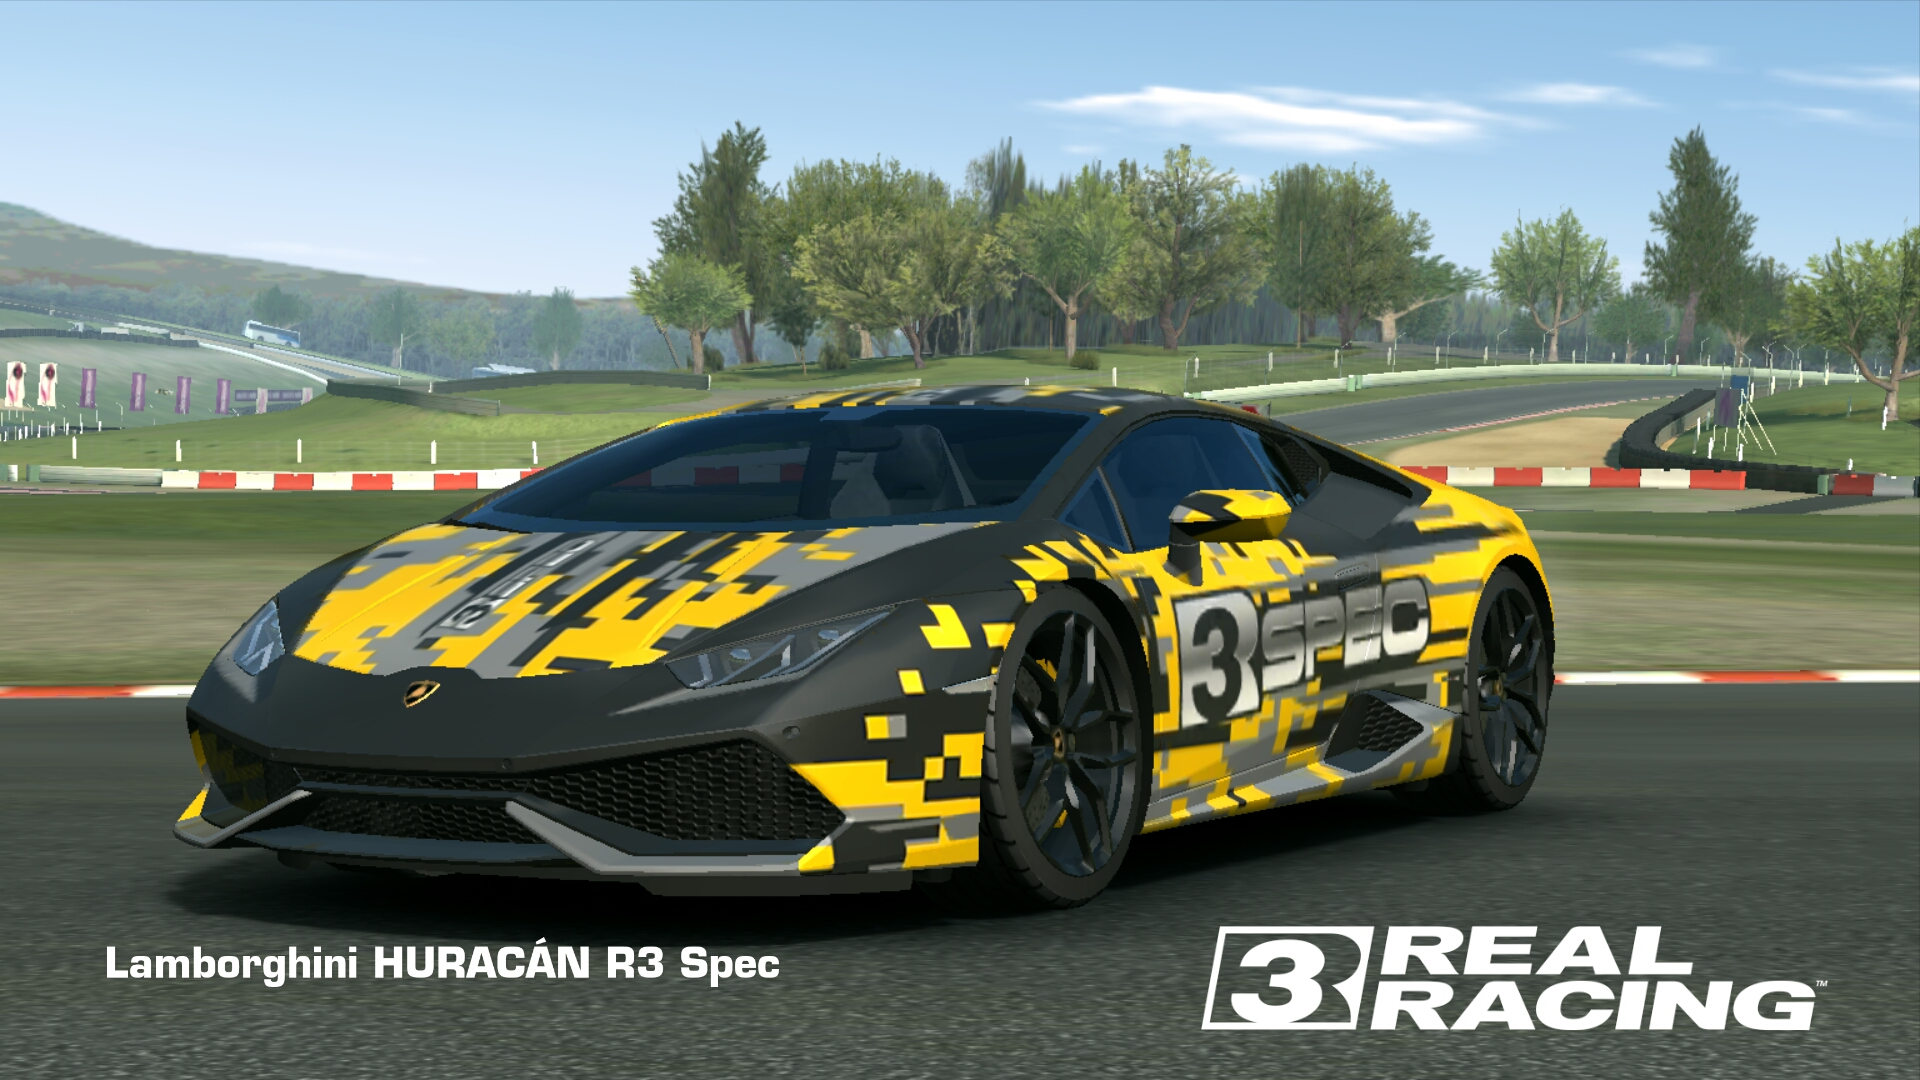 latest?cb=20170206222057 Stunning Lamborghini Huracan Price Real Racing 3 Cars Trend